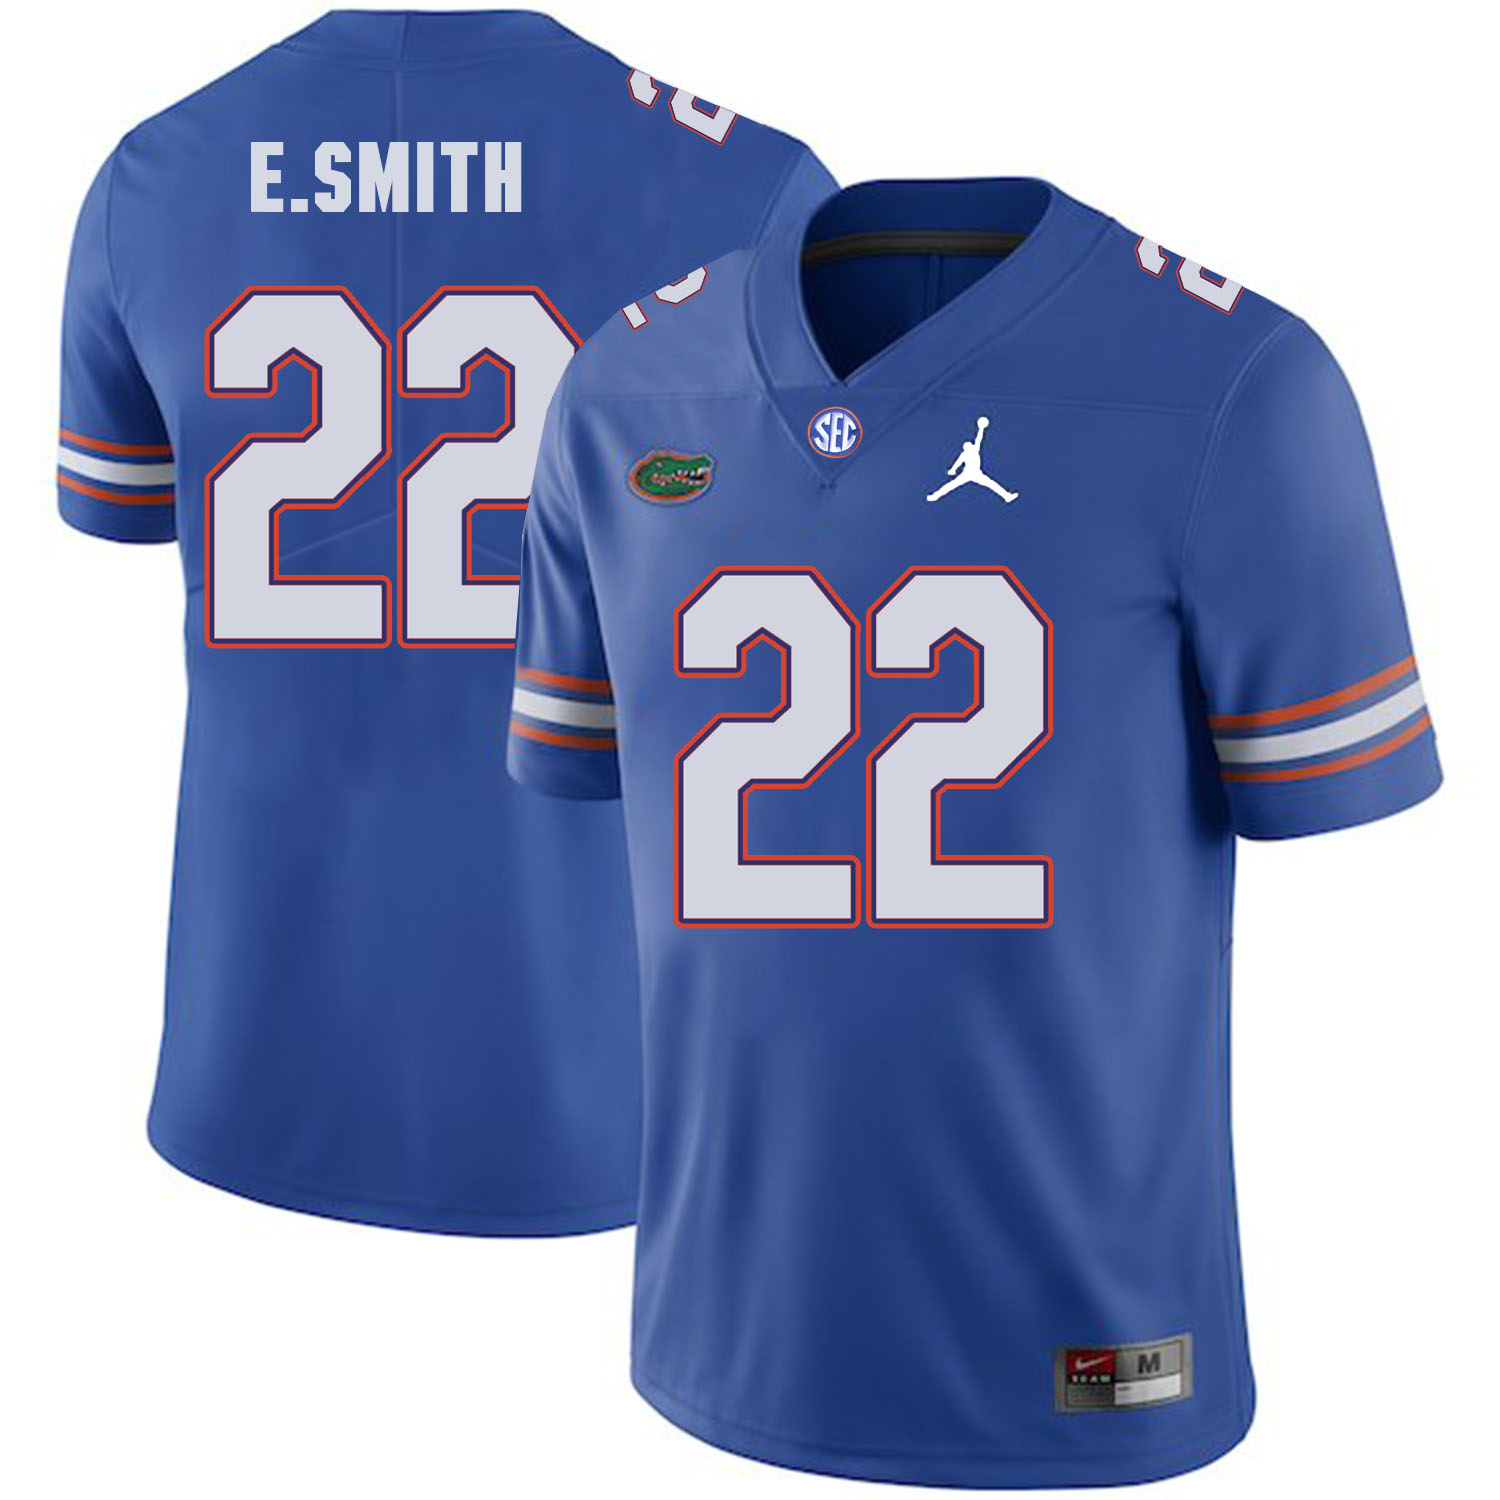 Florida Gators 22 Emmitt Smith Blue College Football Jersey